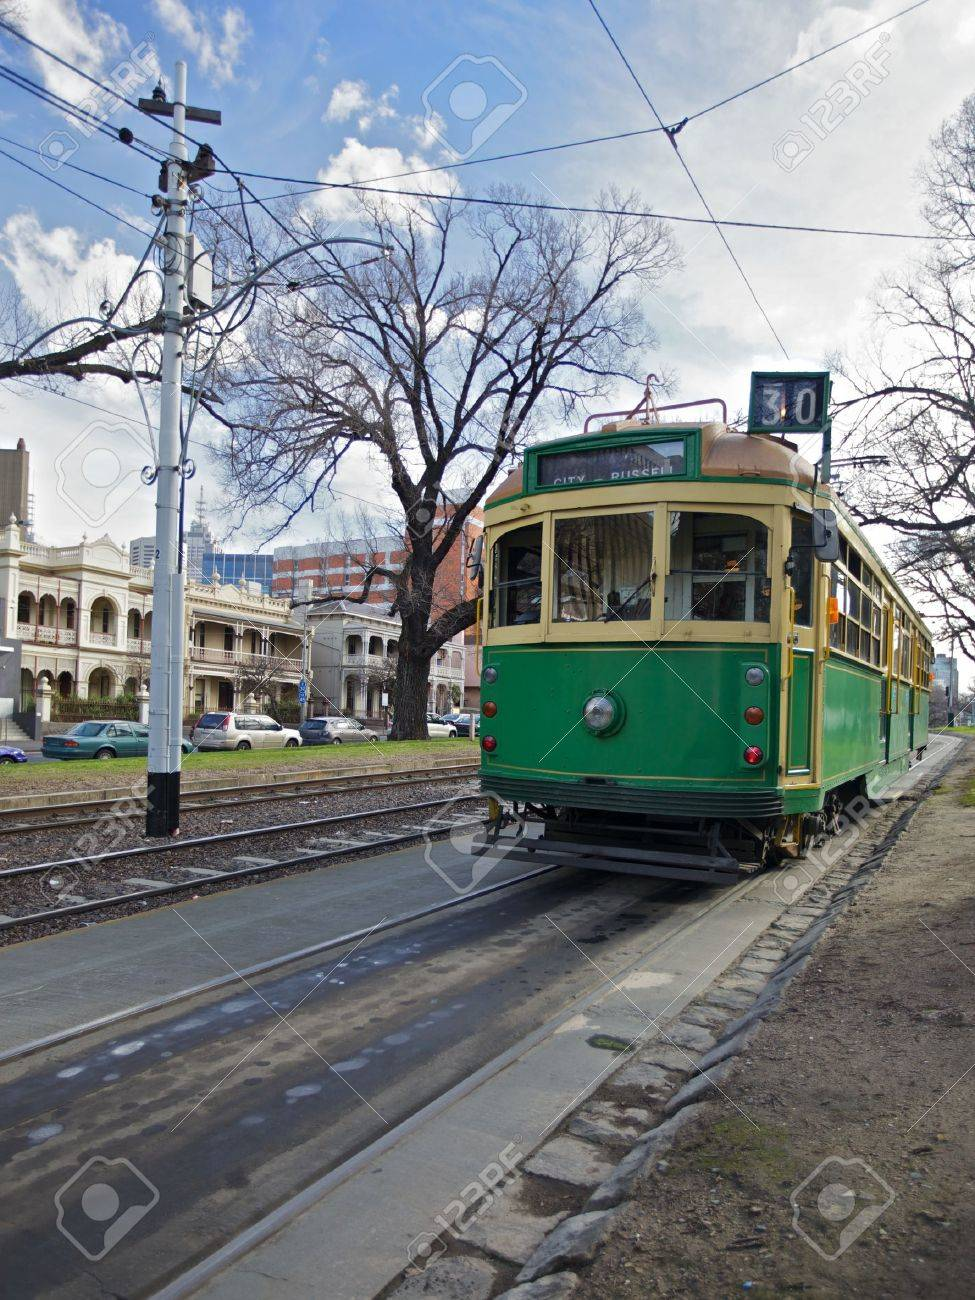 Melbourne trams in the city Centre, Transportation - 15740725